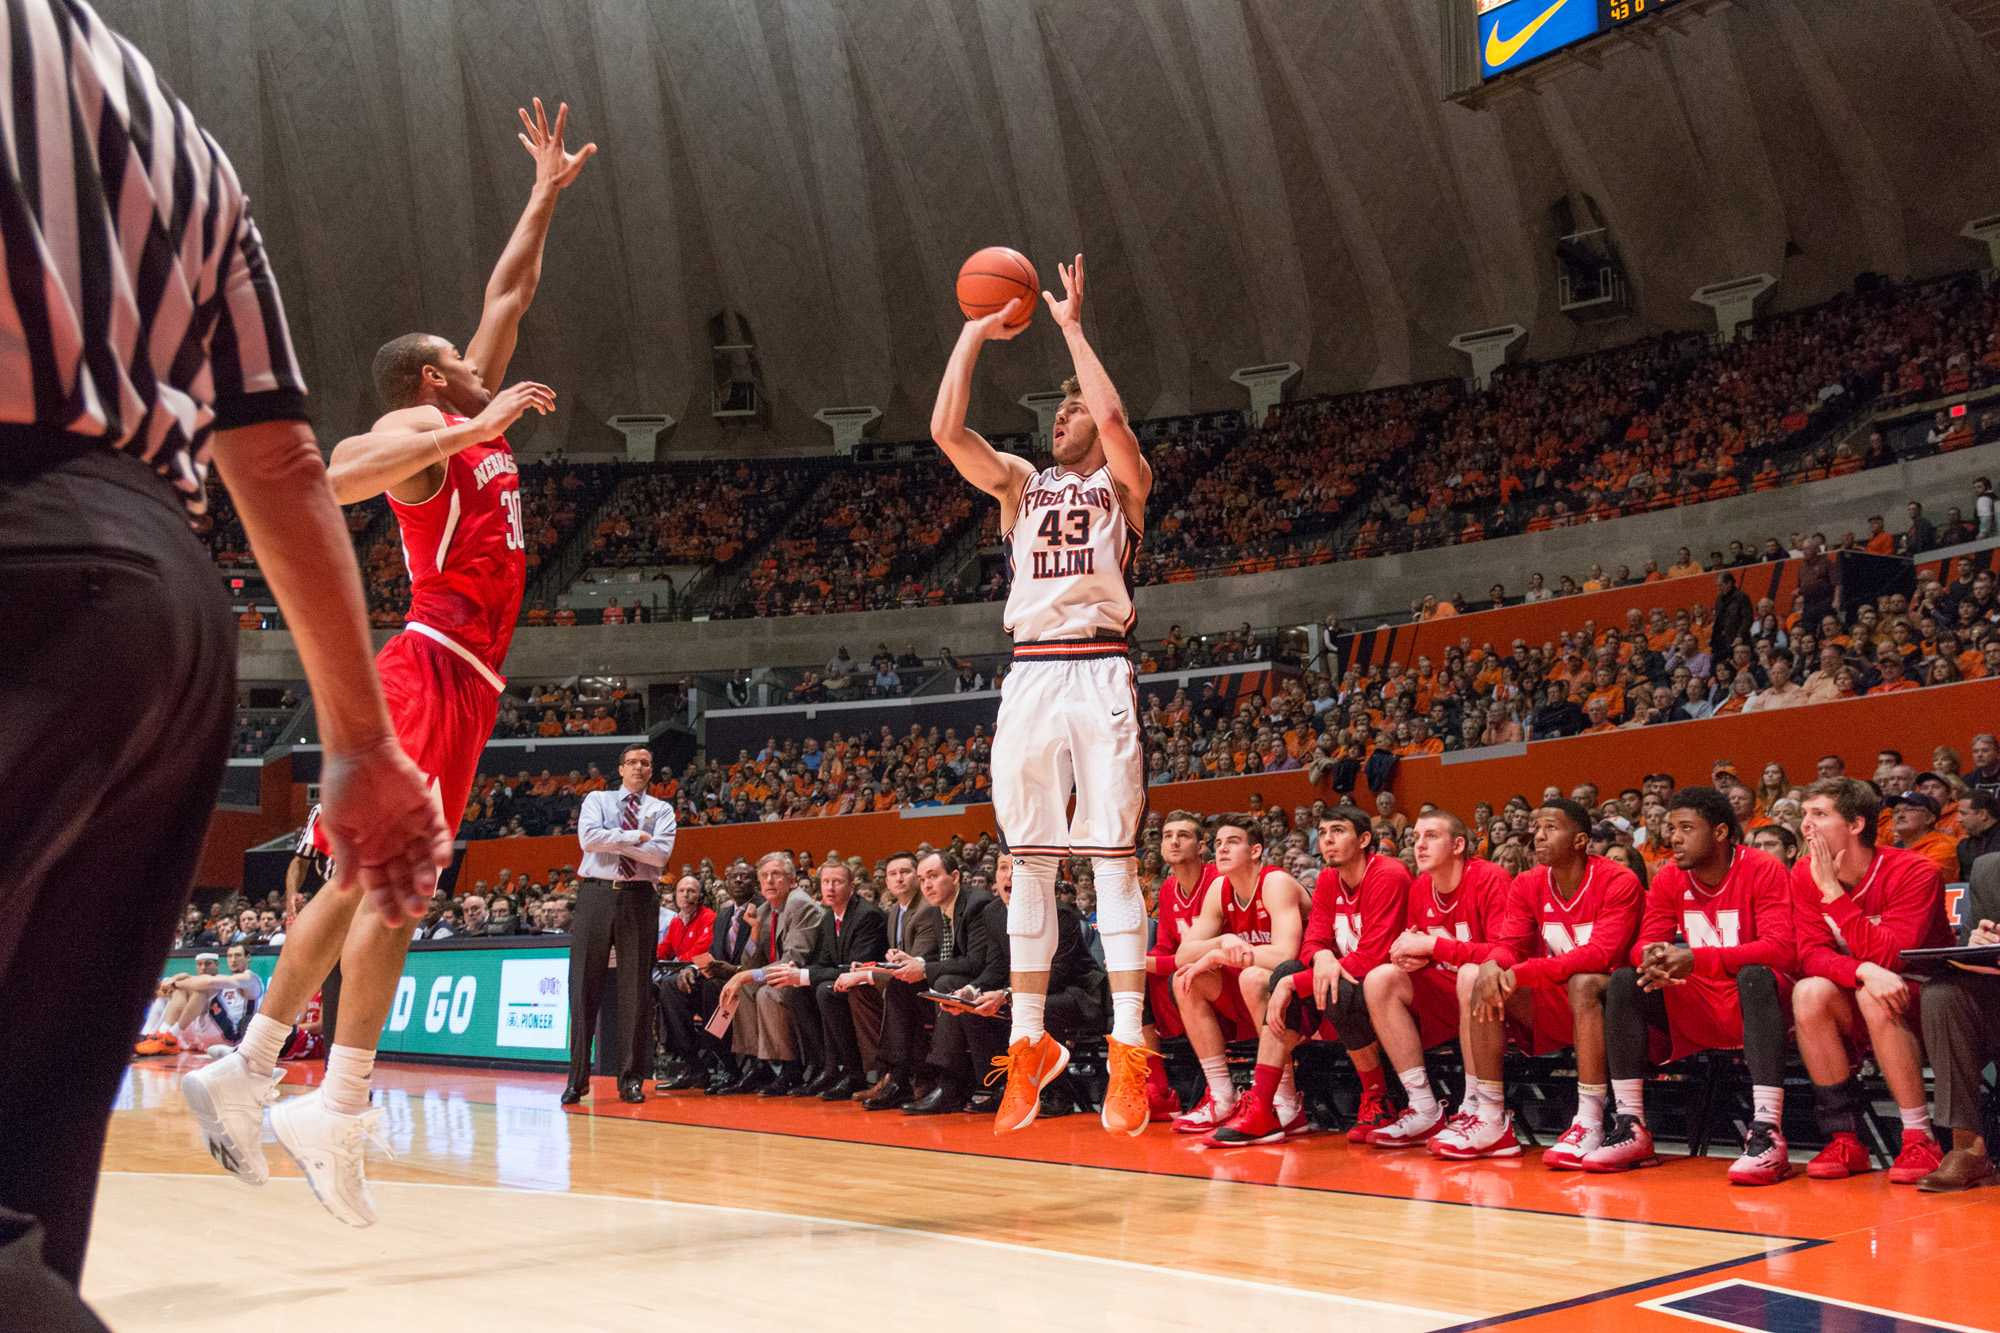 Illinois' Michael Finke shoots a 3-pointer during the Illini's 78-67 loss to the Huskers at State Farm Center on Saturday, January 16.